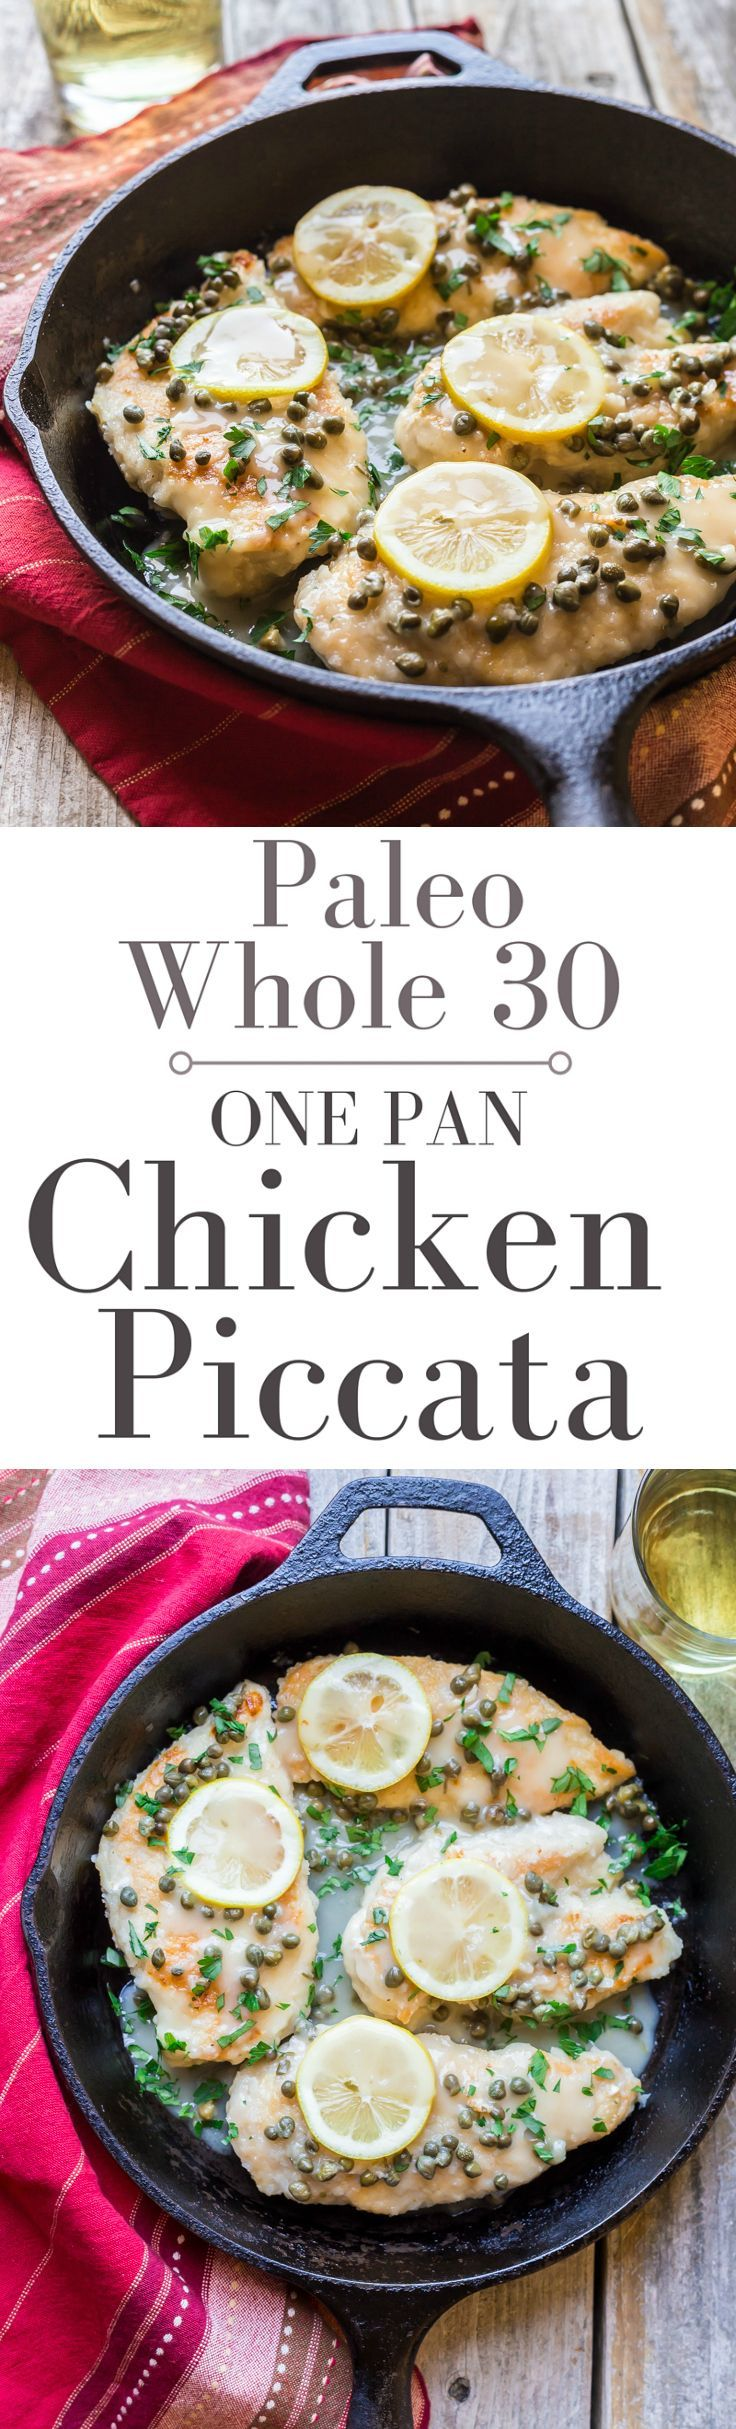 Can You Eat Cheese On The Paleo Diet